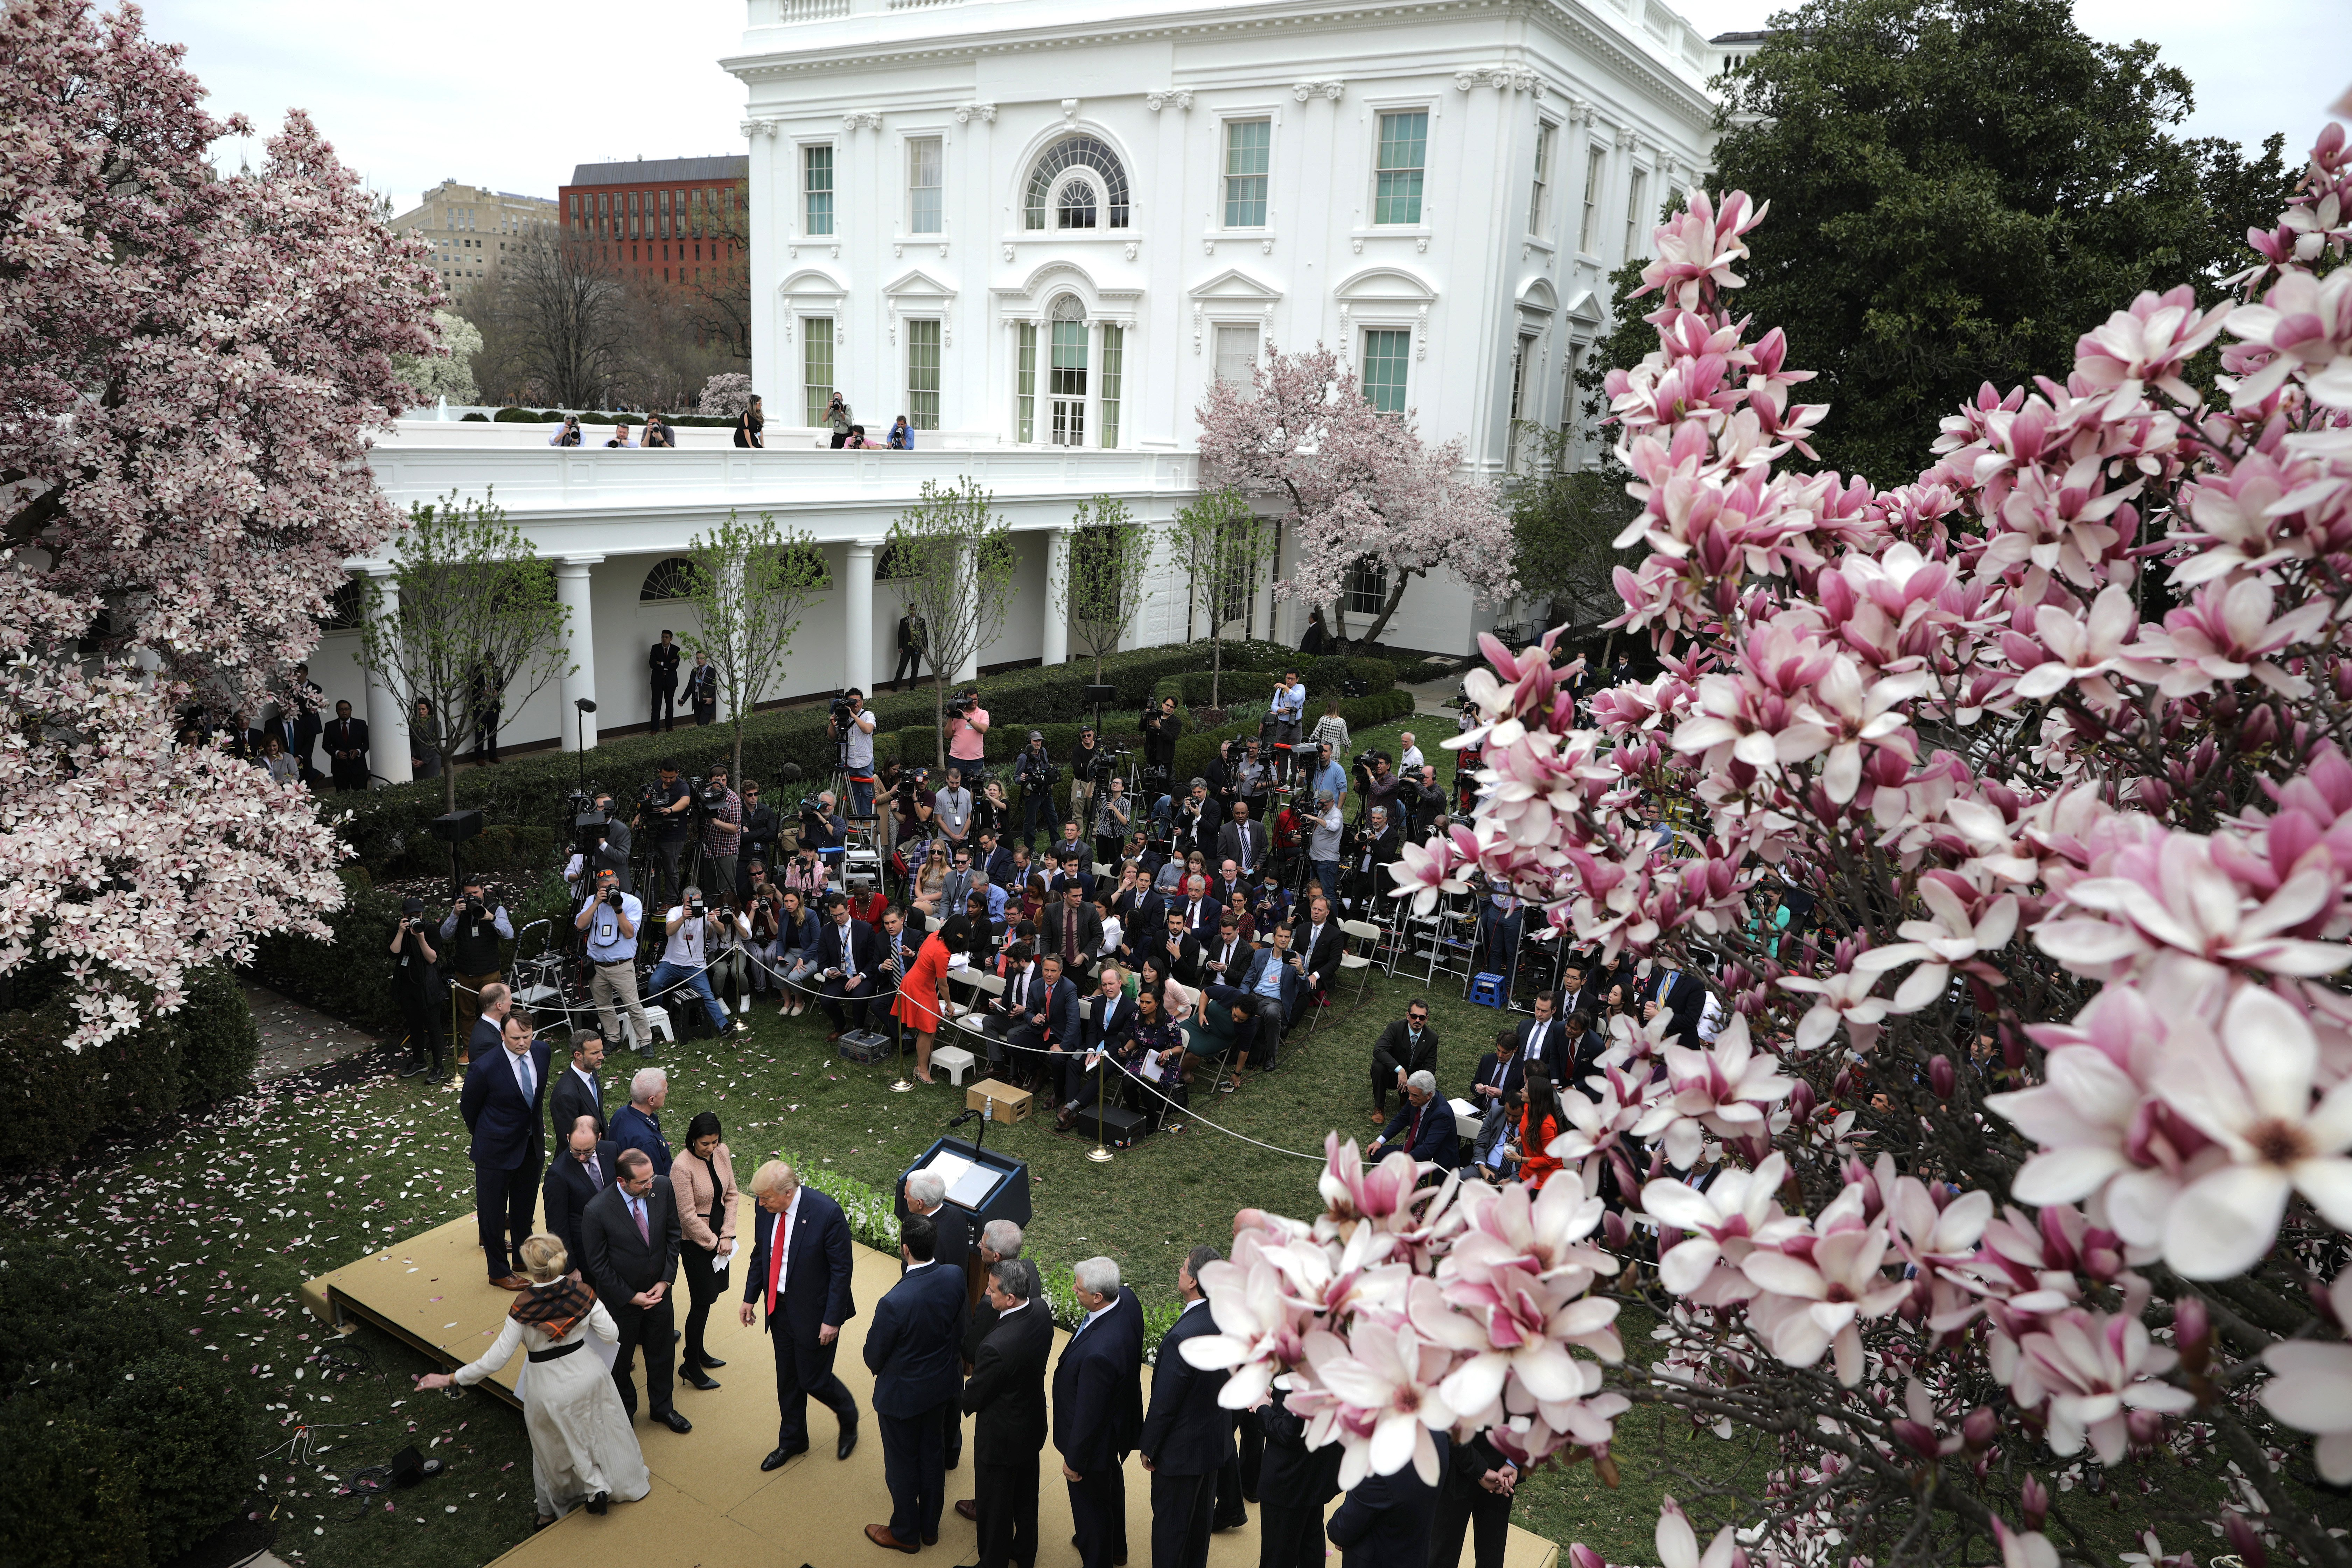 WASHINGTON, DC - MARCH 13: U.S. President Donald Trump leaves the Rose Garden after announcing a national emergency during news conference with members of his coronavirus task force and leaders from the healthcare industry about the ongoing global coronavirus pandemic at the White House March 13, 2020 in Washington, DC. Trump is facing a national health emergency as COVID-19 cases continue to rise and 30 people have died from the virus in the United States, according to The Center for Systems Science and Engineering at Johns Hopkins University. (Photo by Chip Somodevilla/Getty Images)